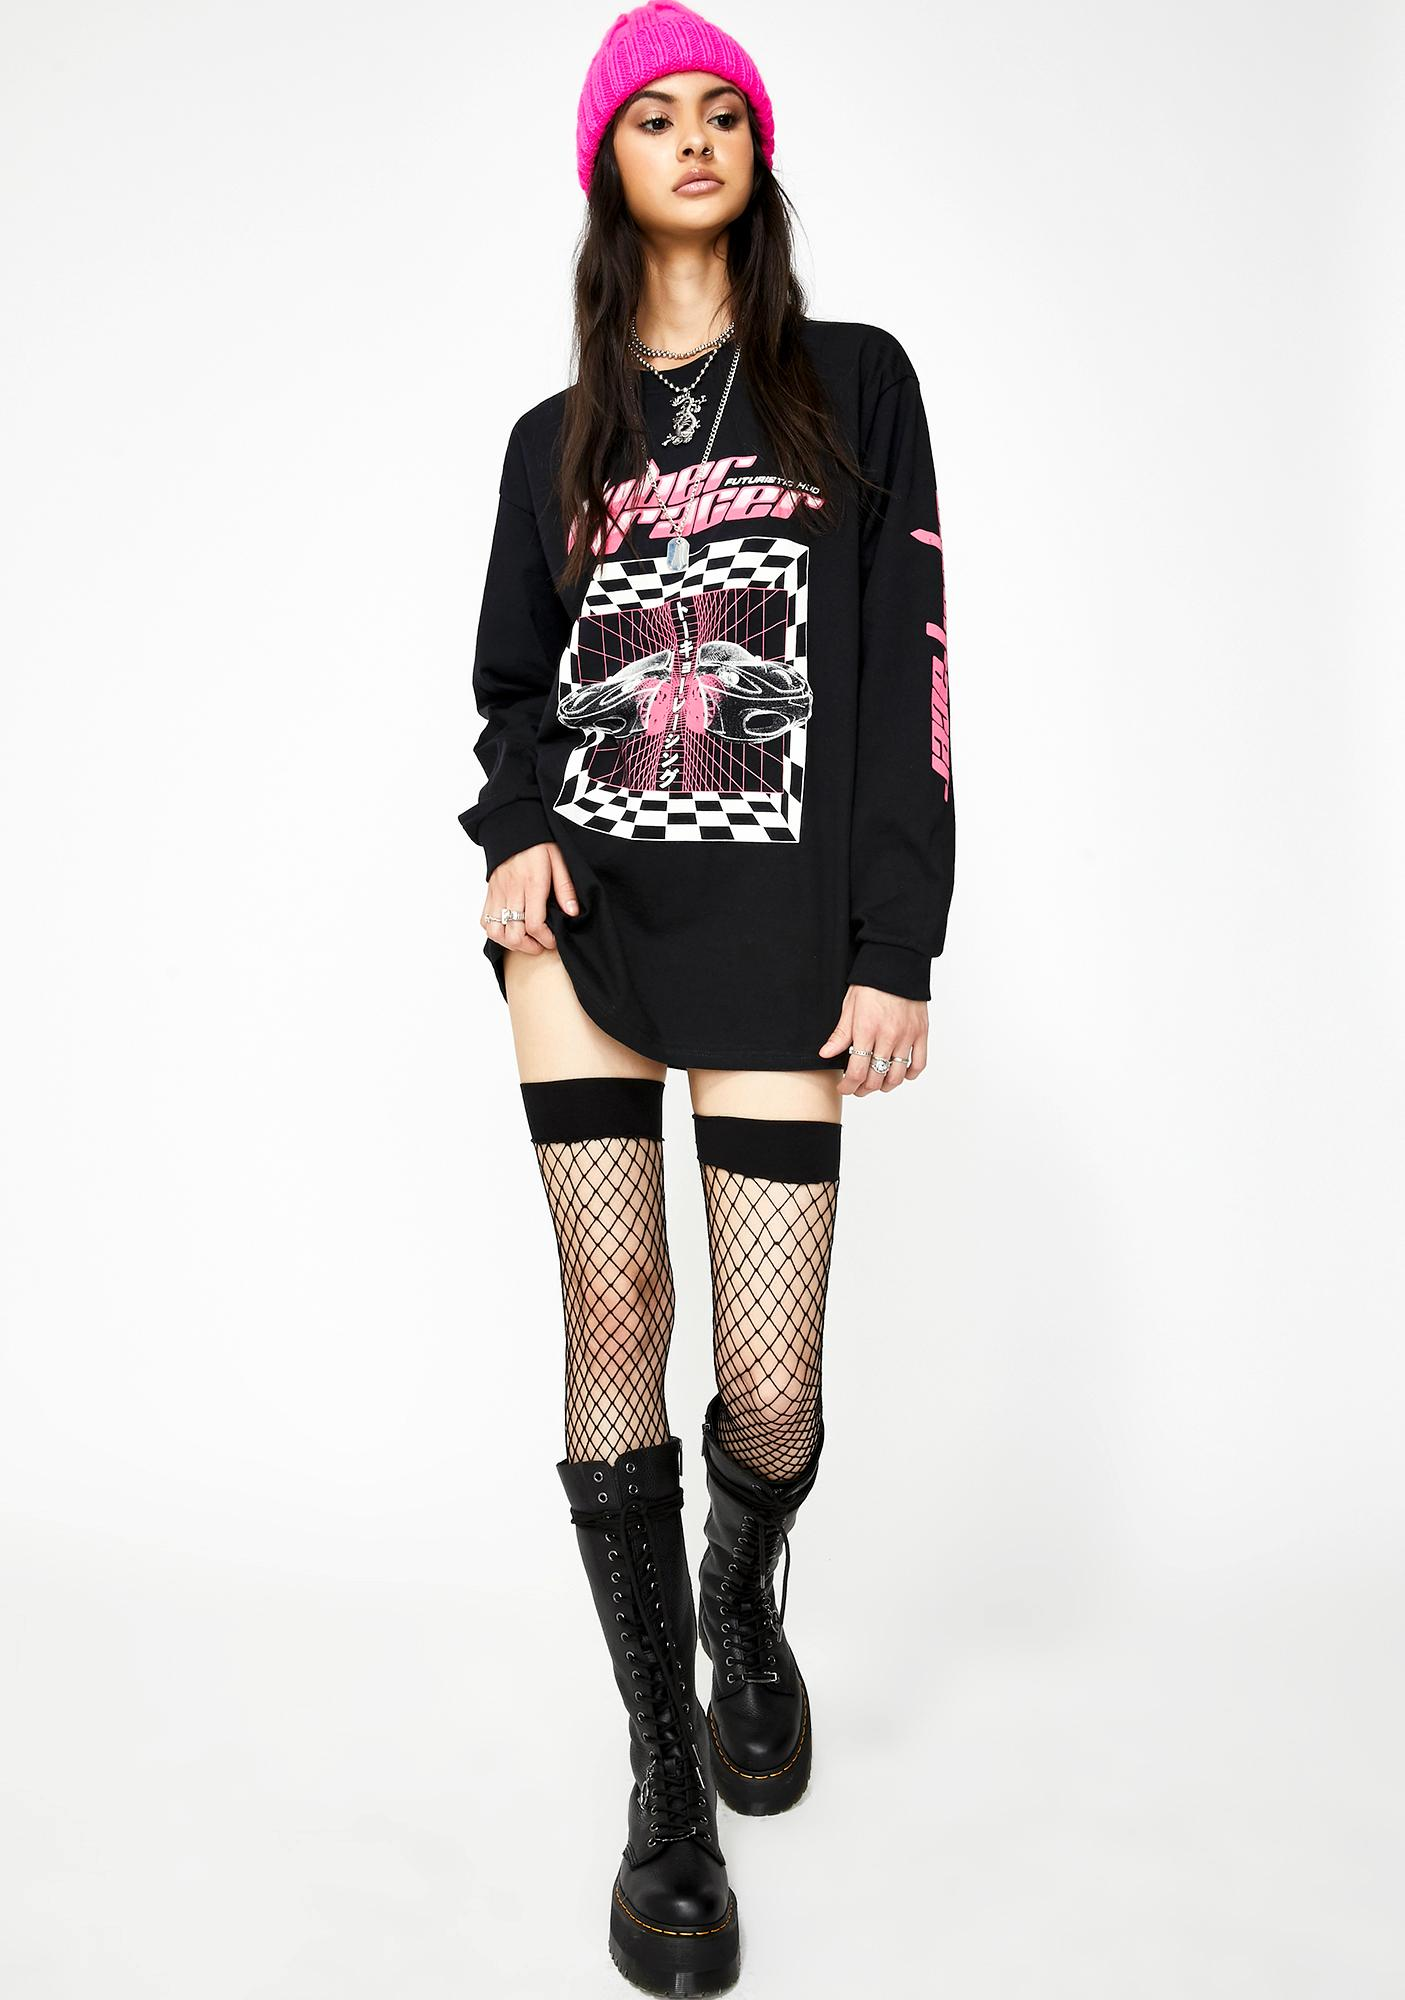 ILL INTENT Red Racer Long Sleeve Tee